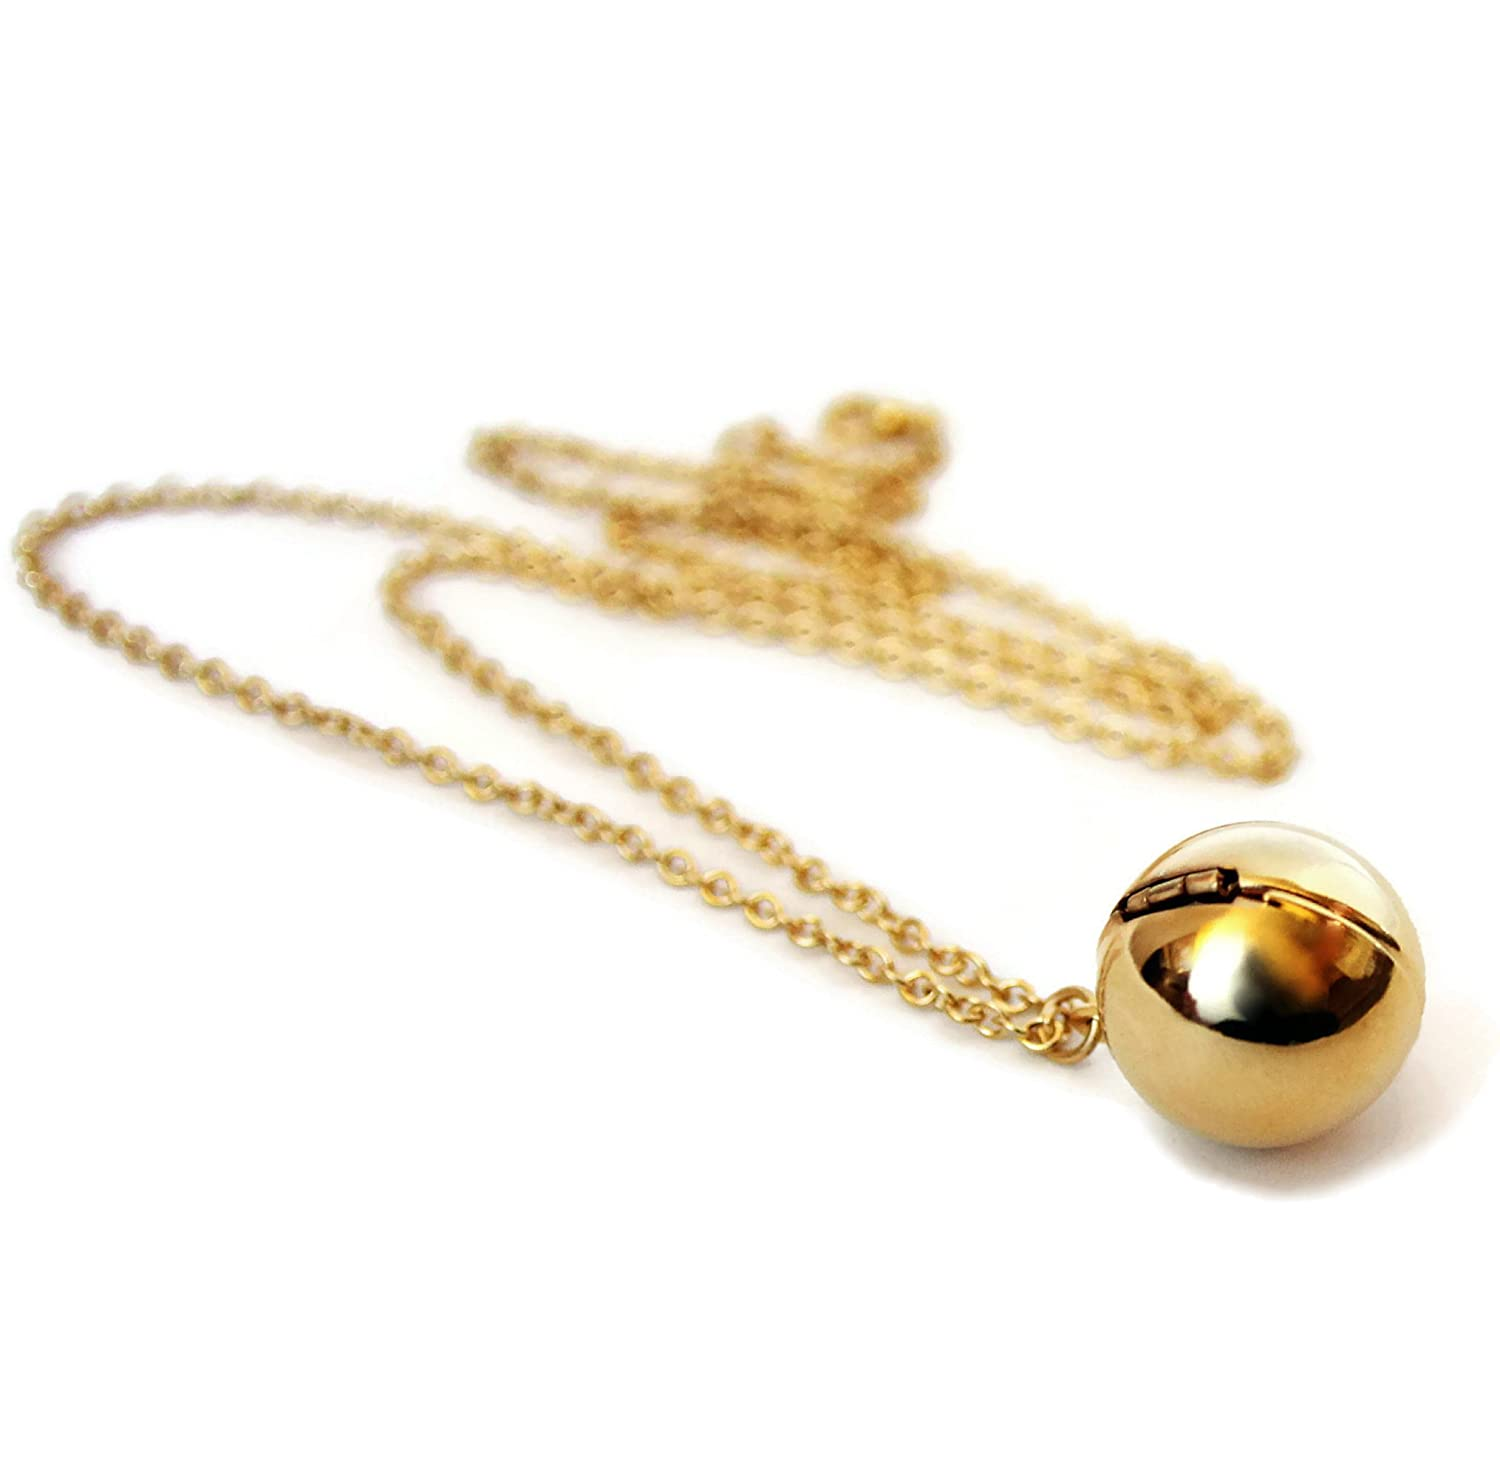 locket amazon dearest ball jewelry gold lockets message mine tone dp com secret necklace